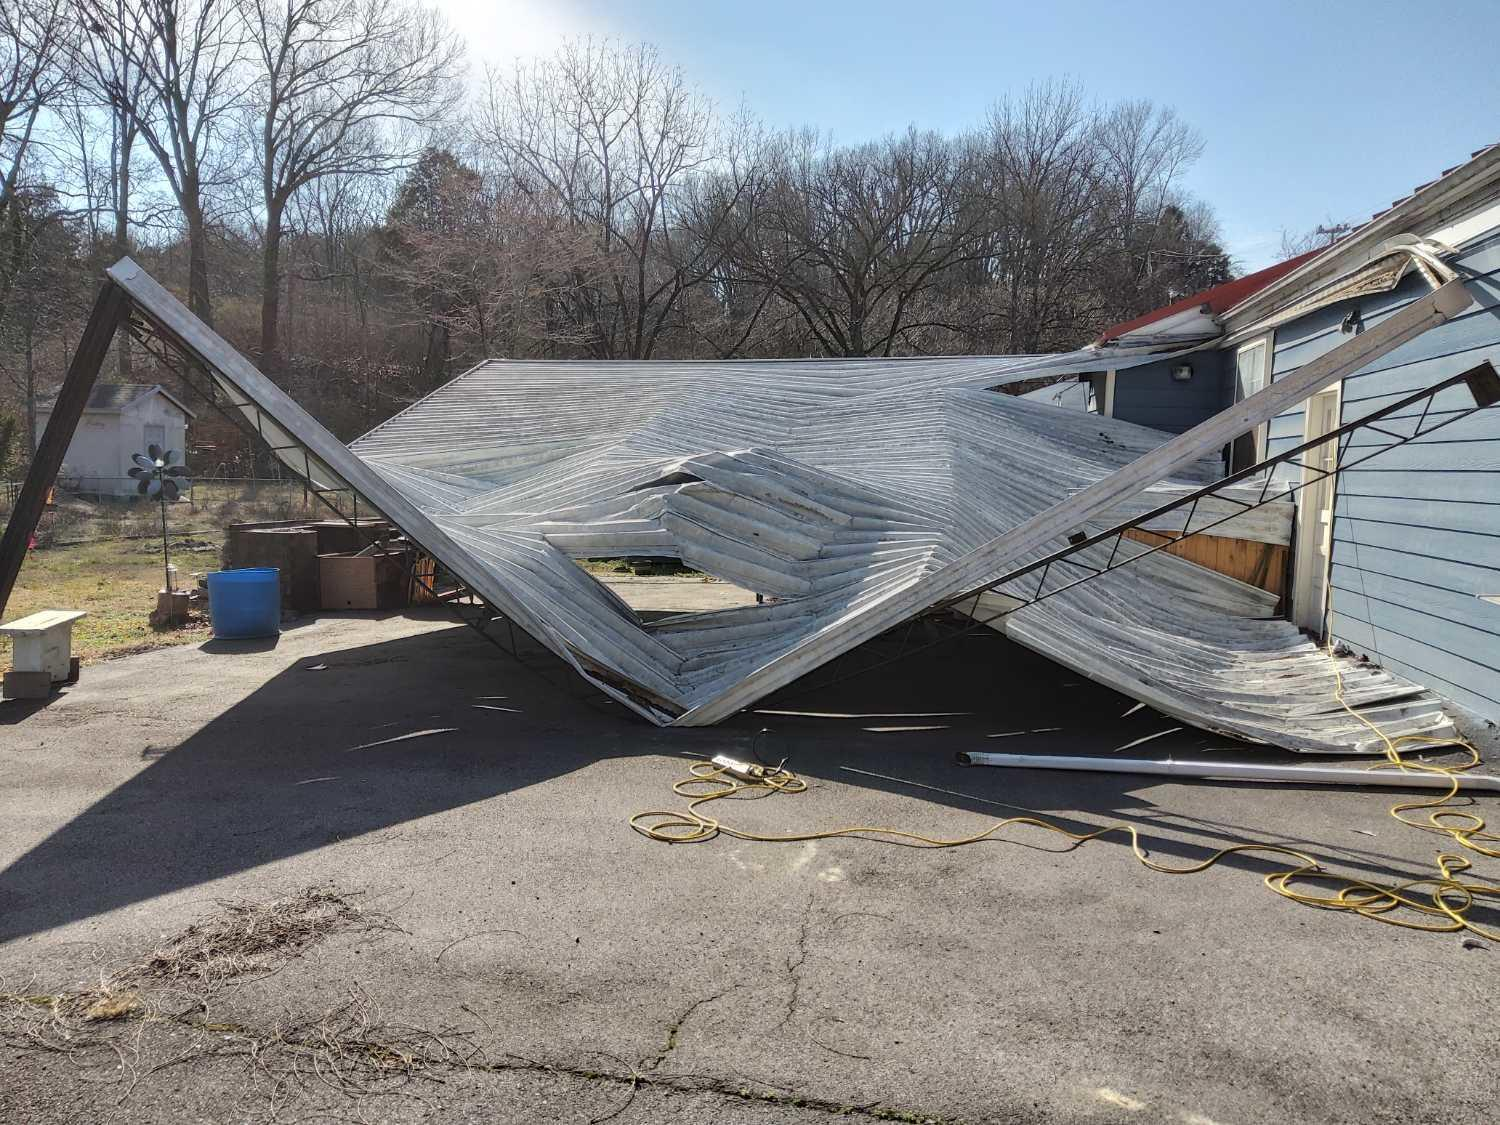 Collapsed Carport Removal in Nashville, TN - Before Photo